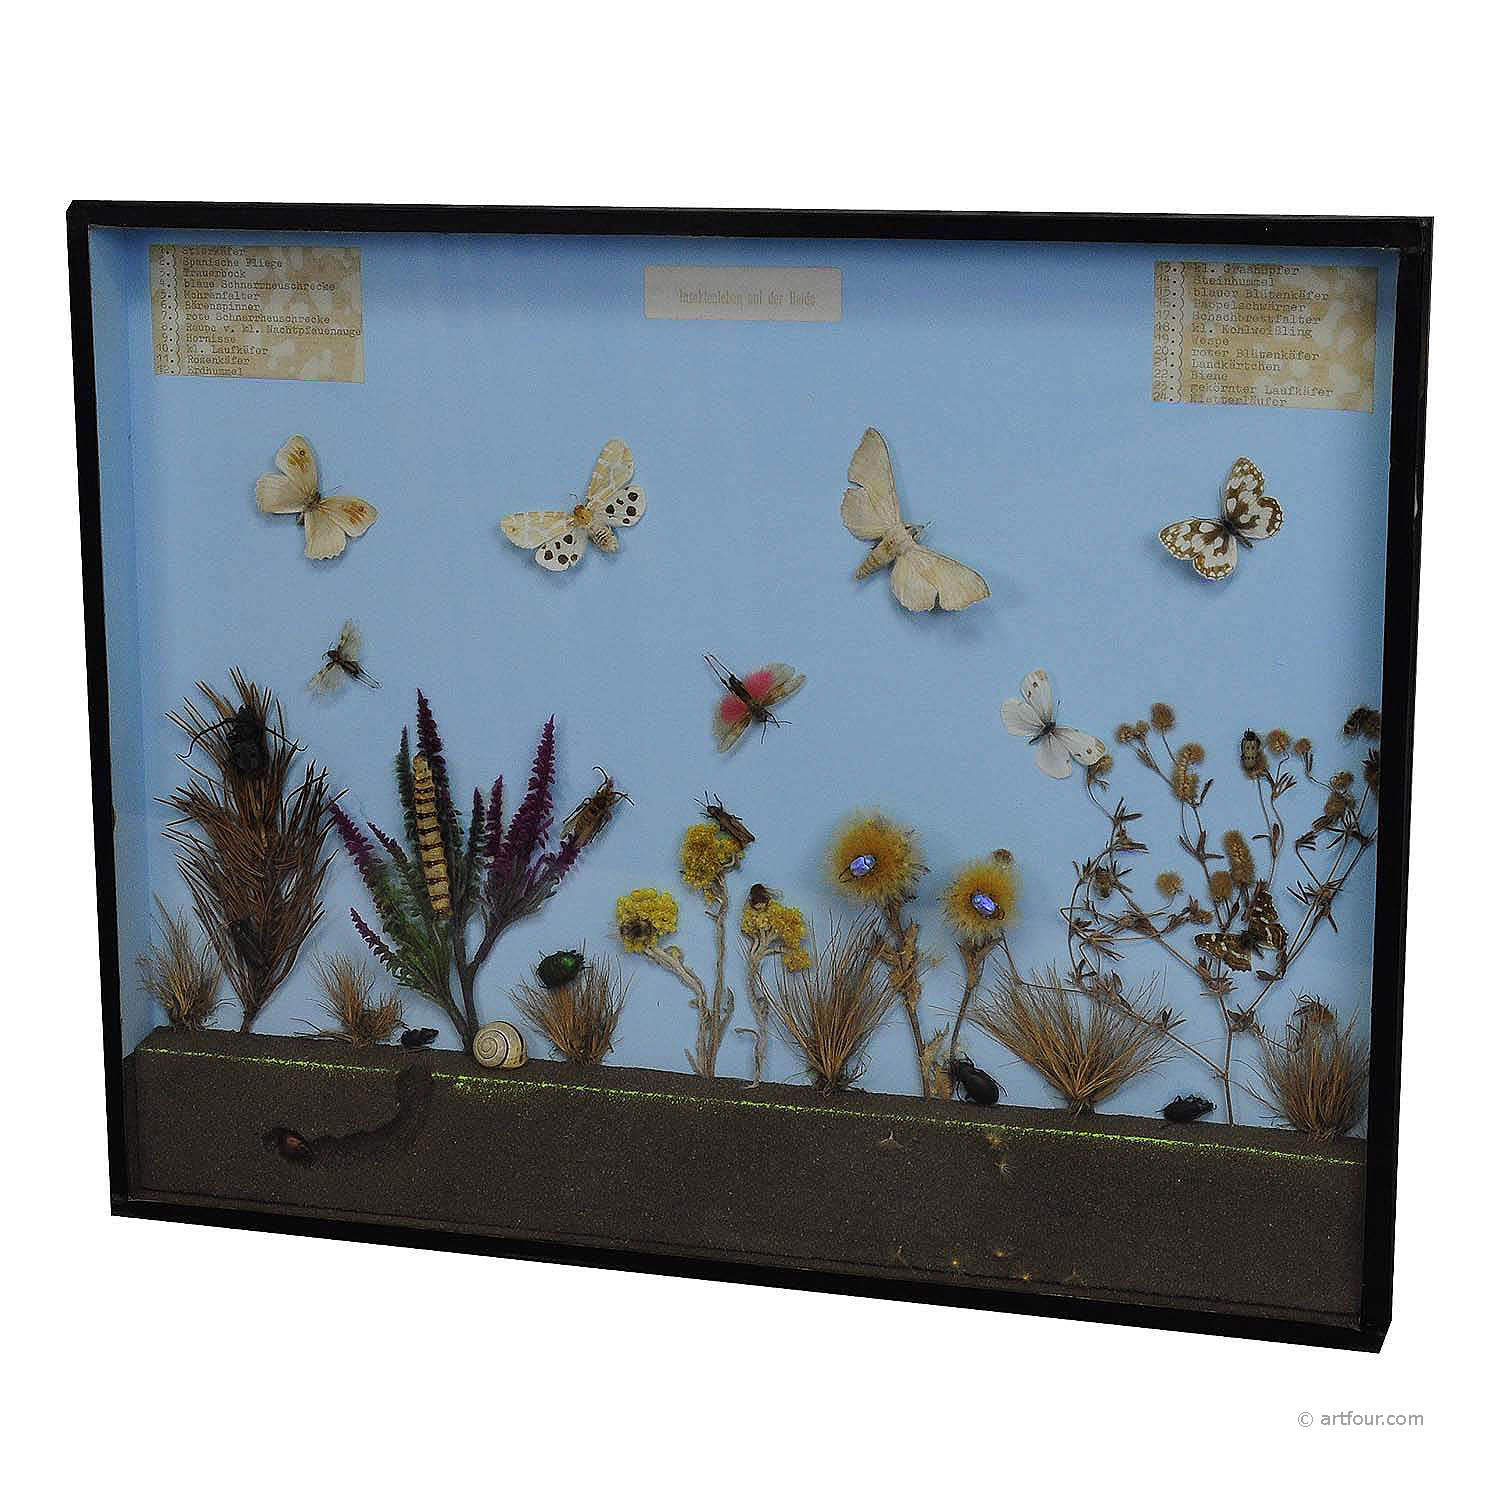 a great vintage school teaching display of the insects of the heath